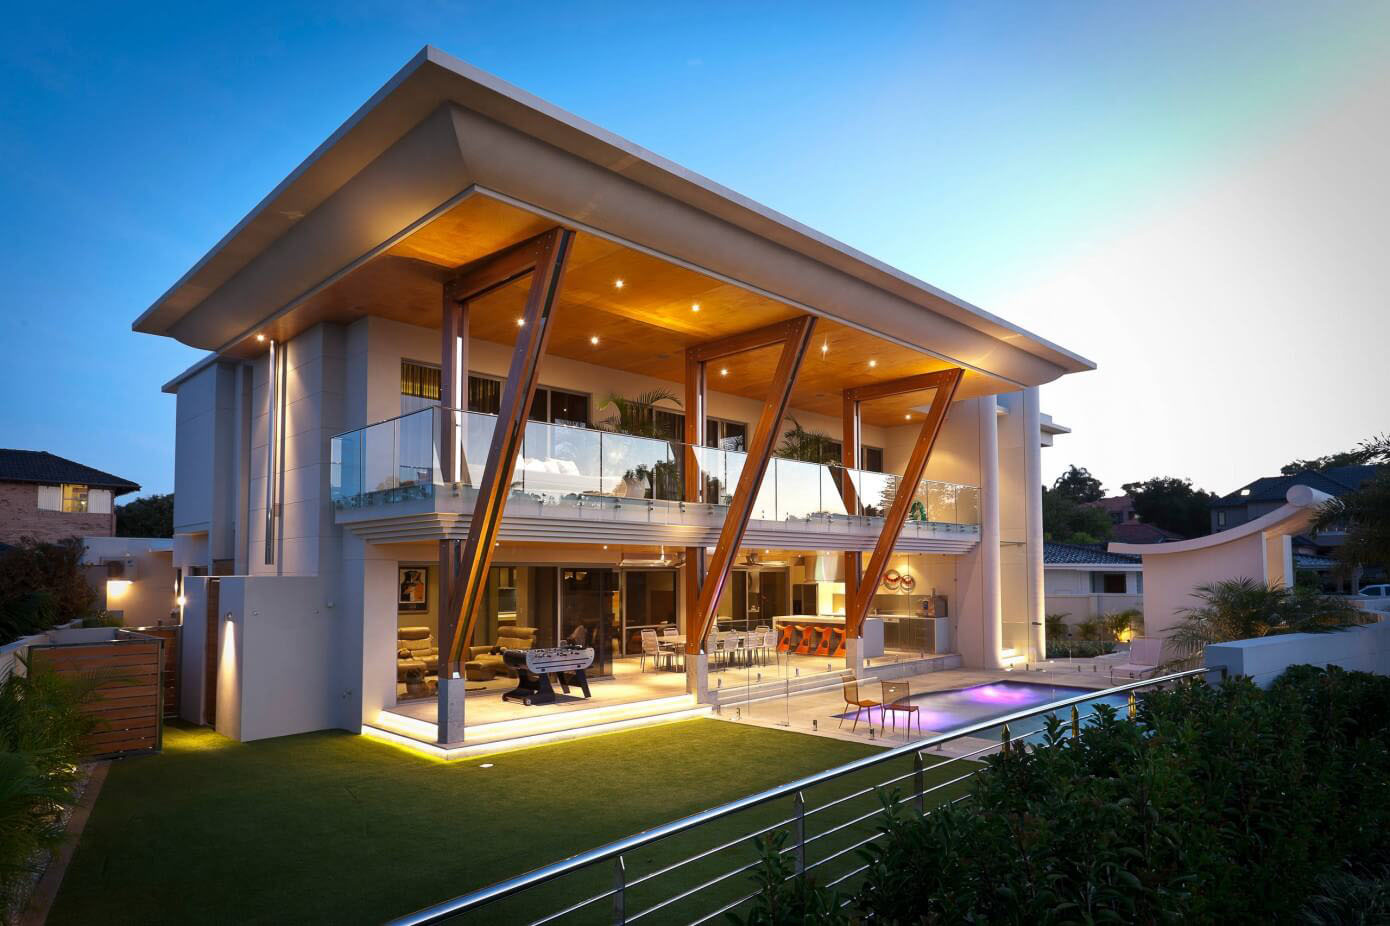 Ultra modern home in perth with large roof idesignarch interior design architecture - Modern house designs with attic ...